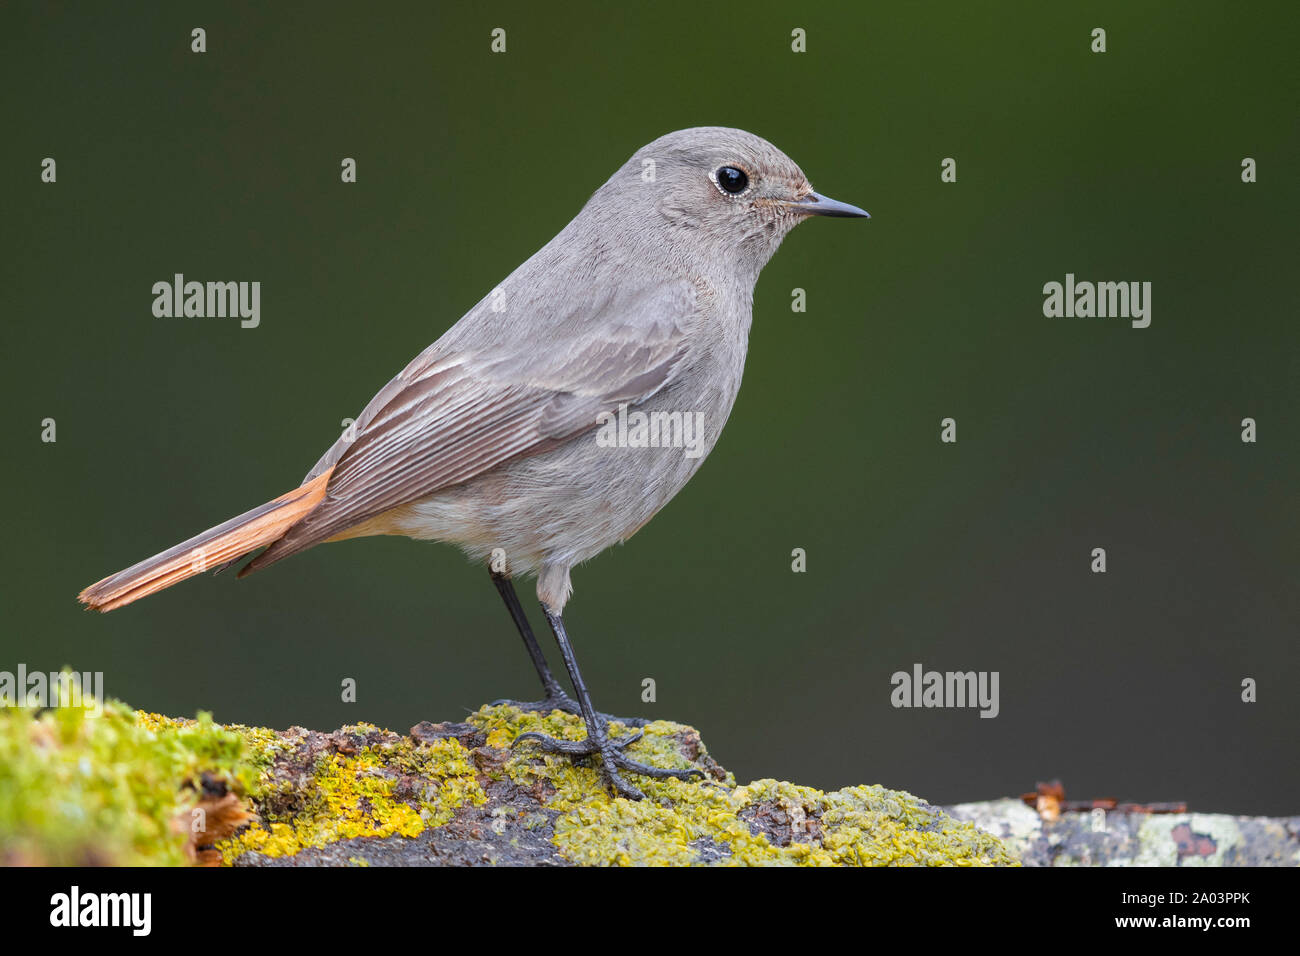 Black Redstart (Phoenicurus ochruros gibraltariensis), side view of an individual perched on a piece of a bark, Campania, Italy Stock Photo